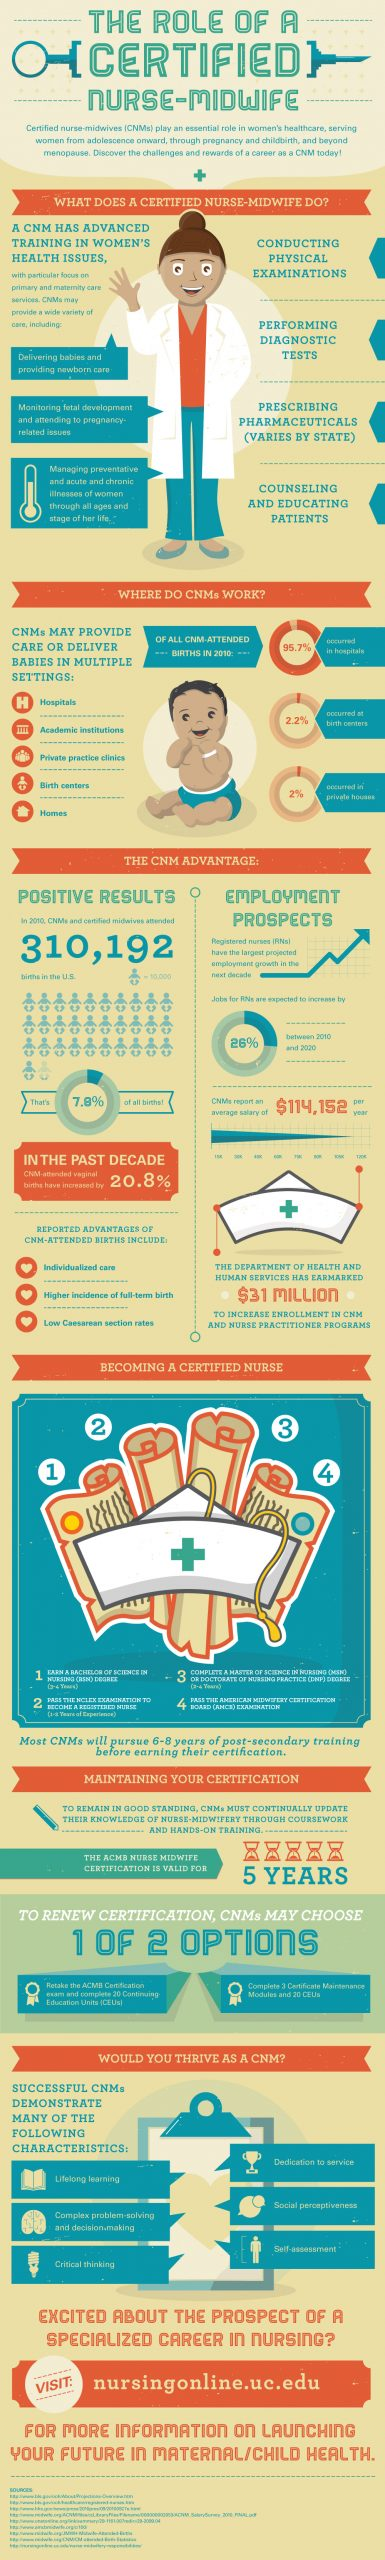 The Role of a Certified Nurse-Midwife [INFOGRAPHIC]